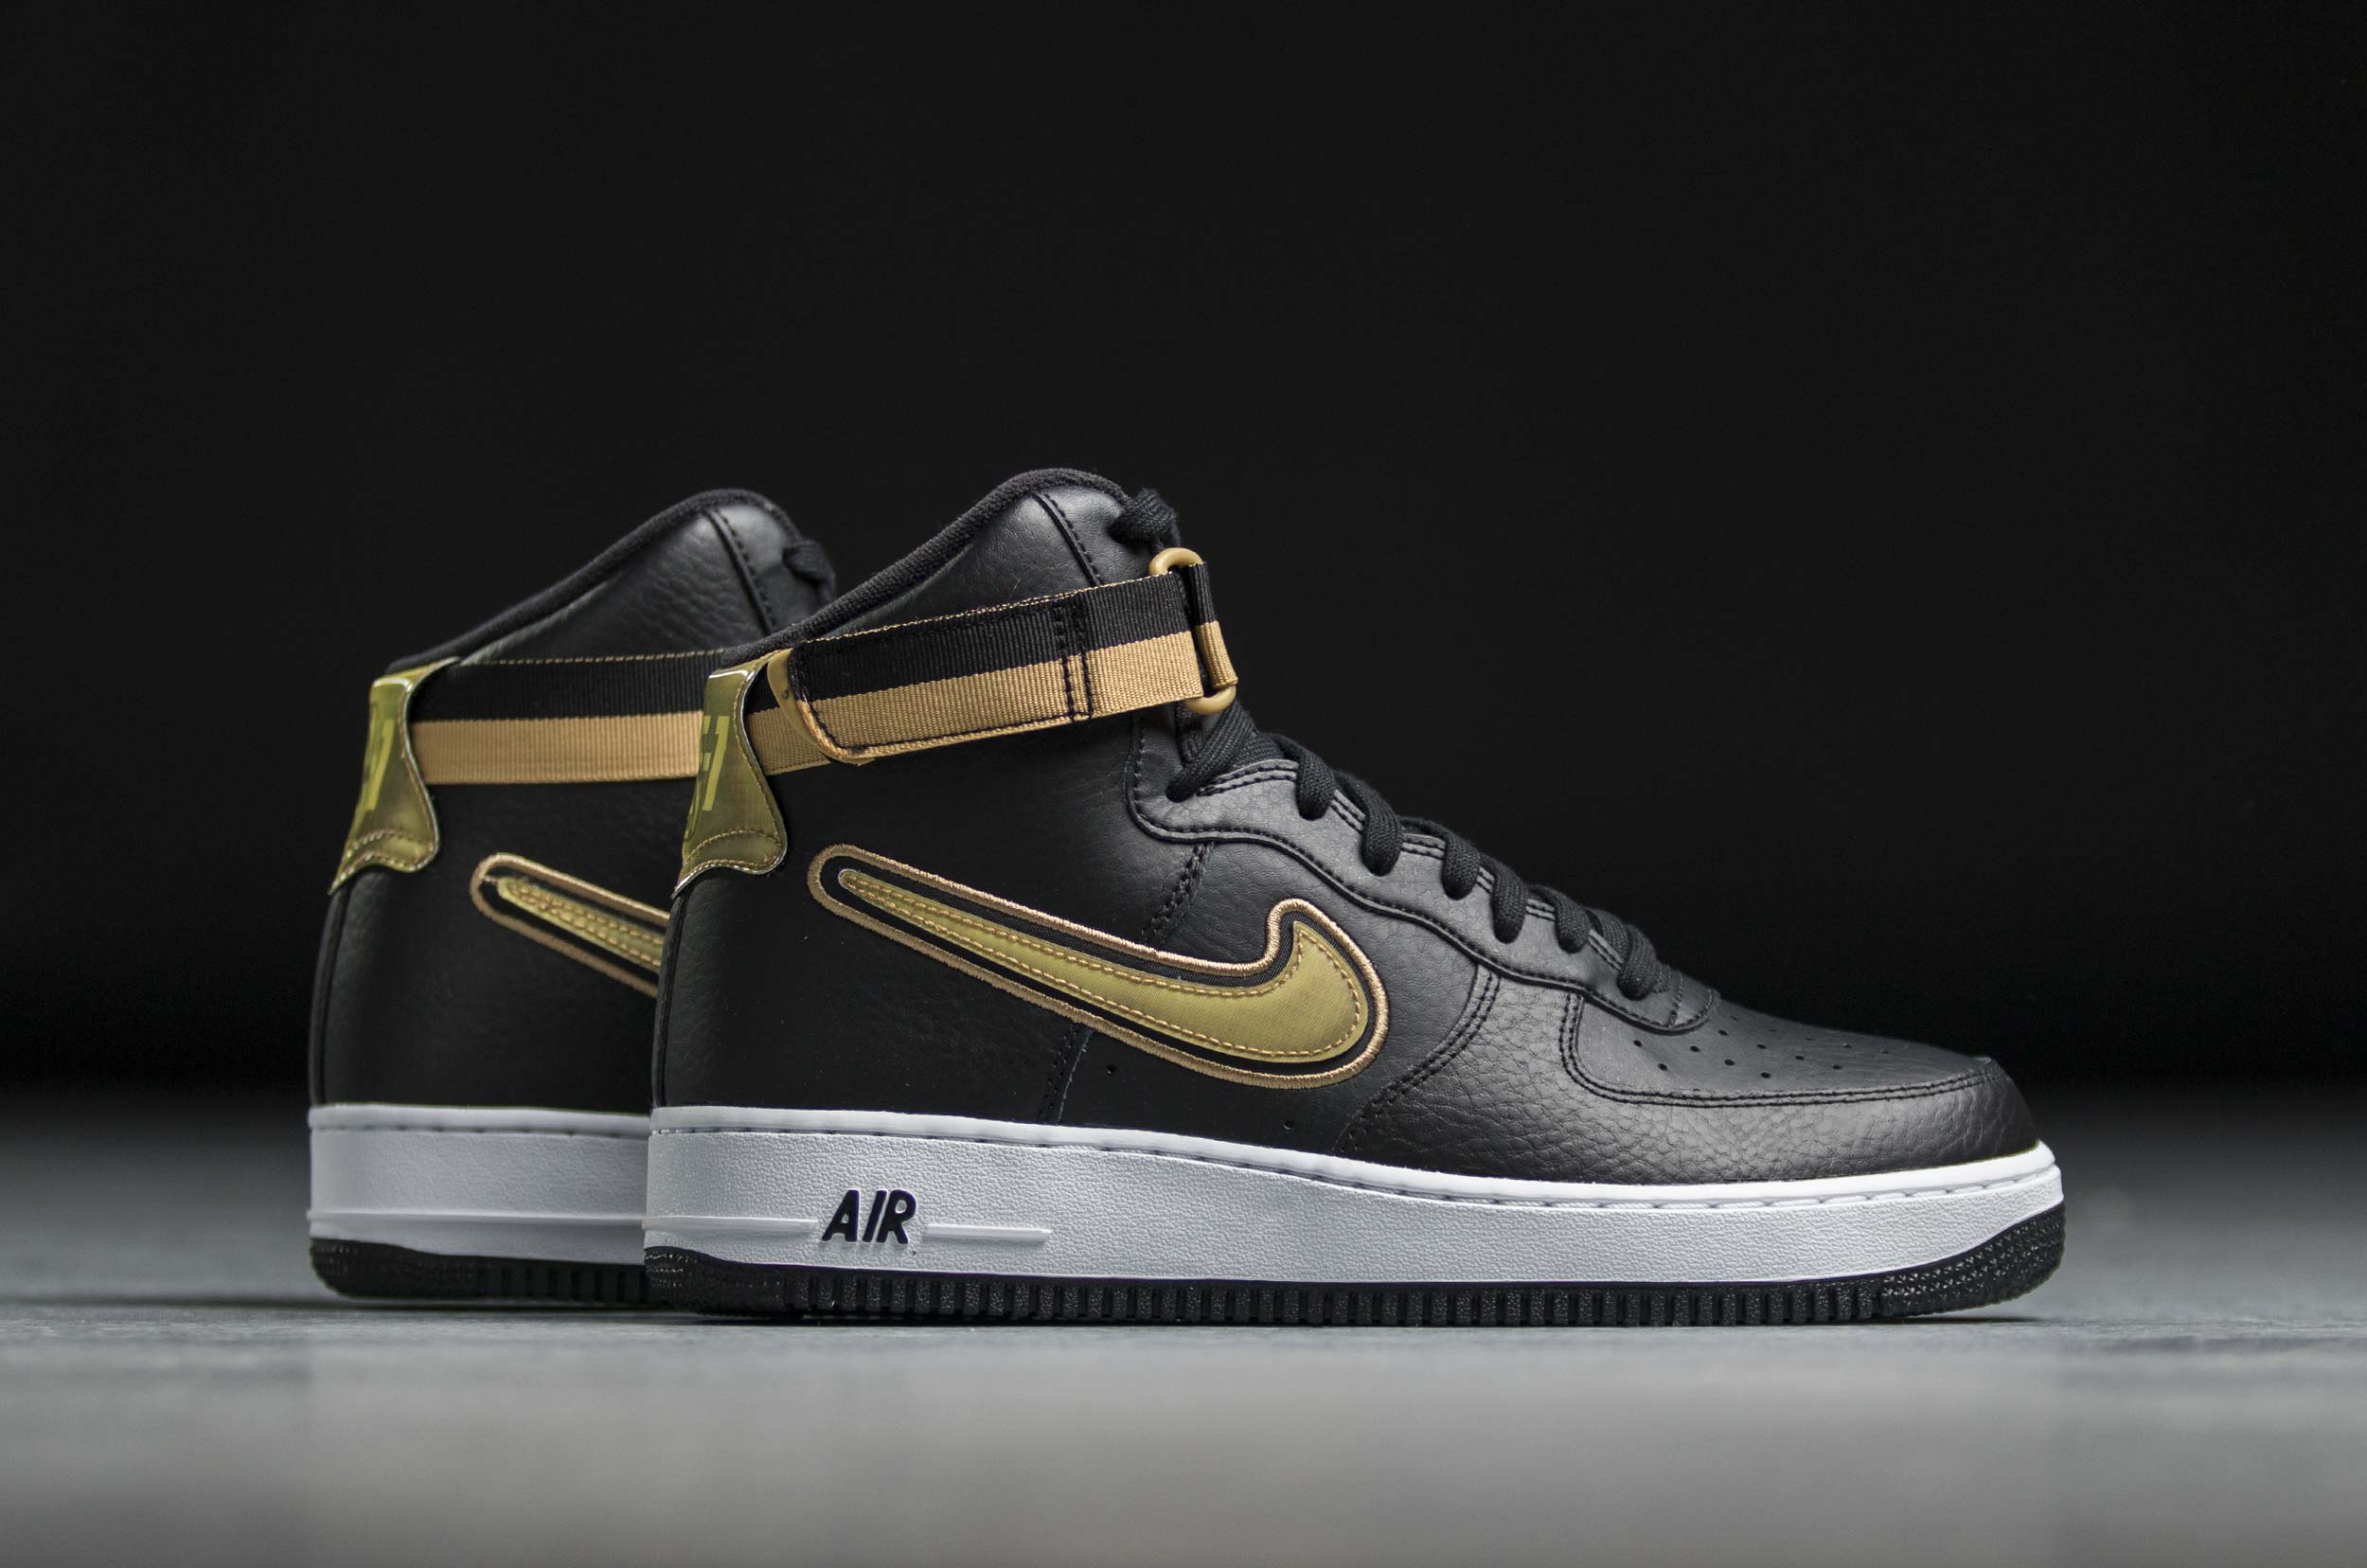 NIKE AIR FORCE 1 HIGH '07 LV8 AV3938-001 Μαύρο